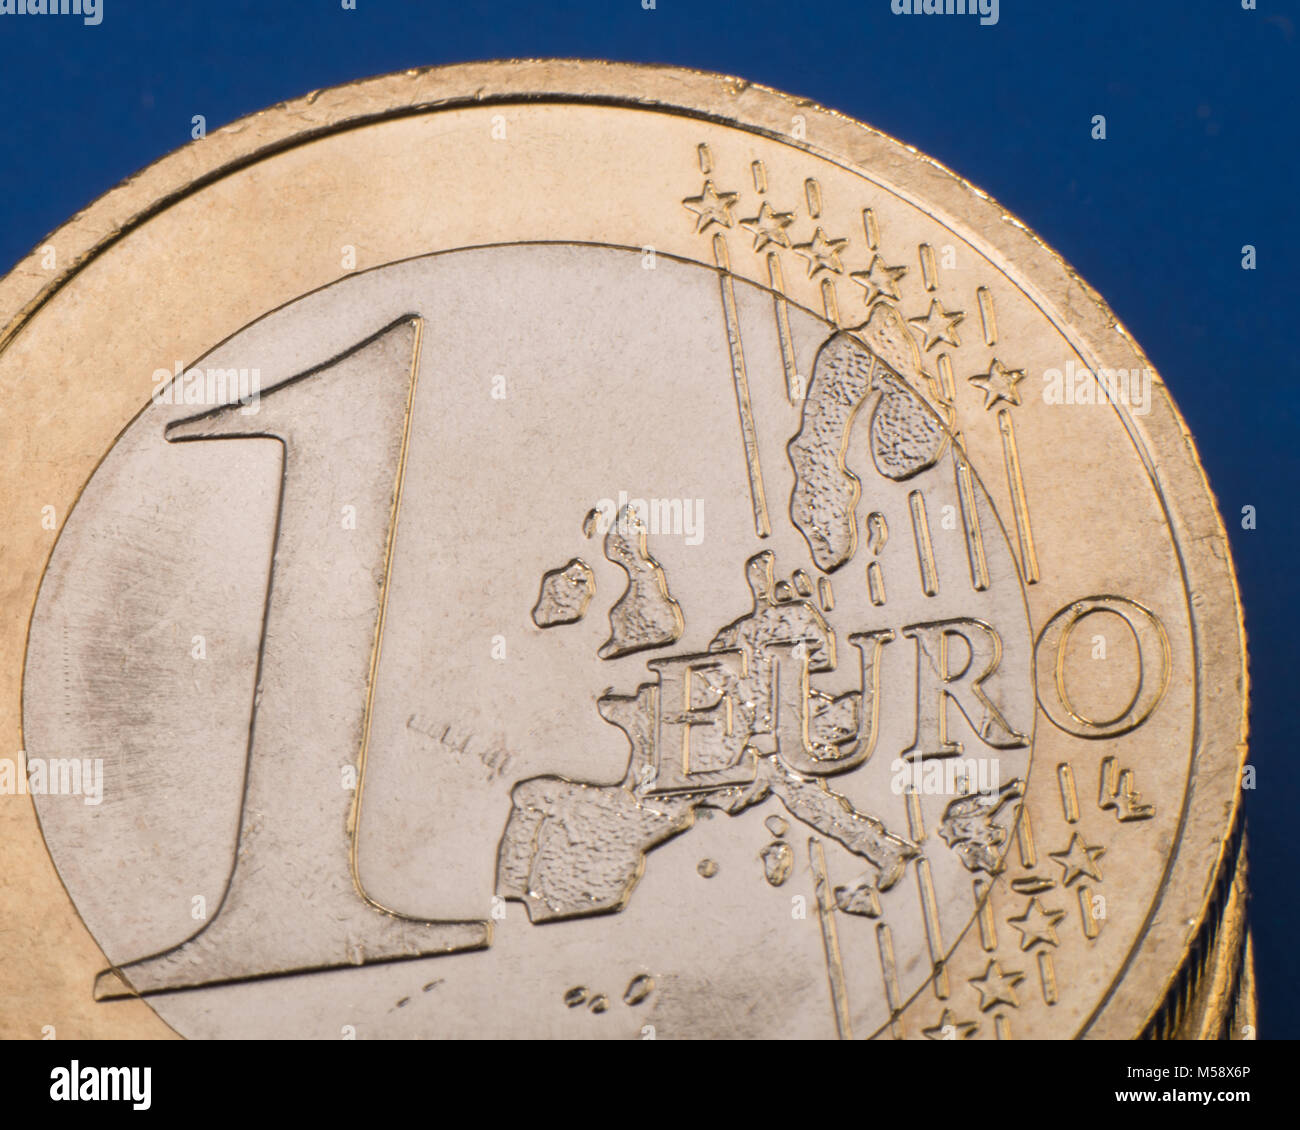 coin one euro on a blue background. Euro money. Closeup. Currency of the European Union. - Stock Image